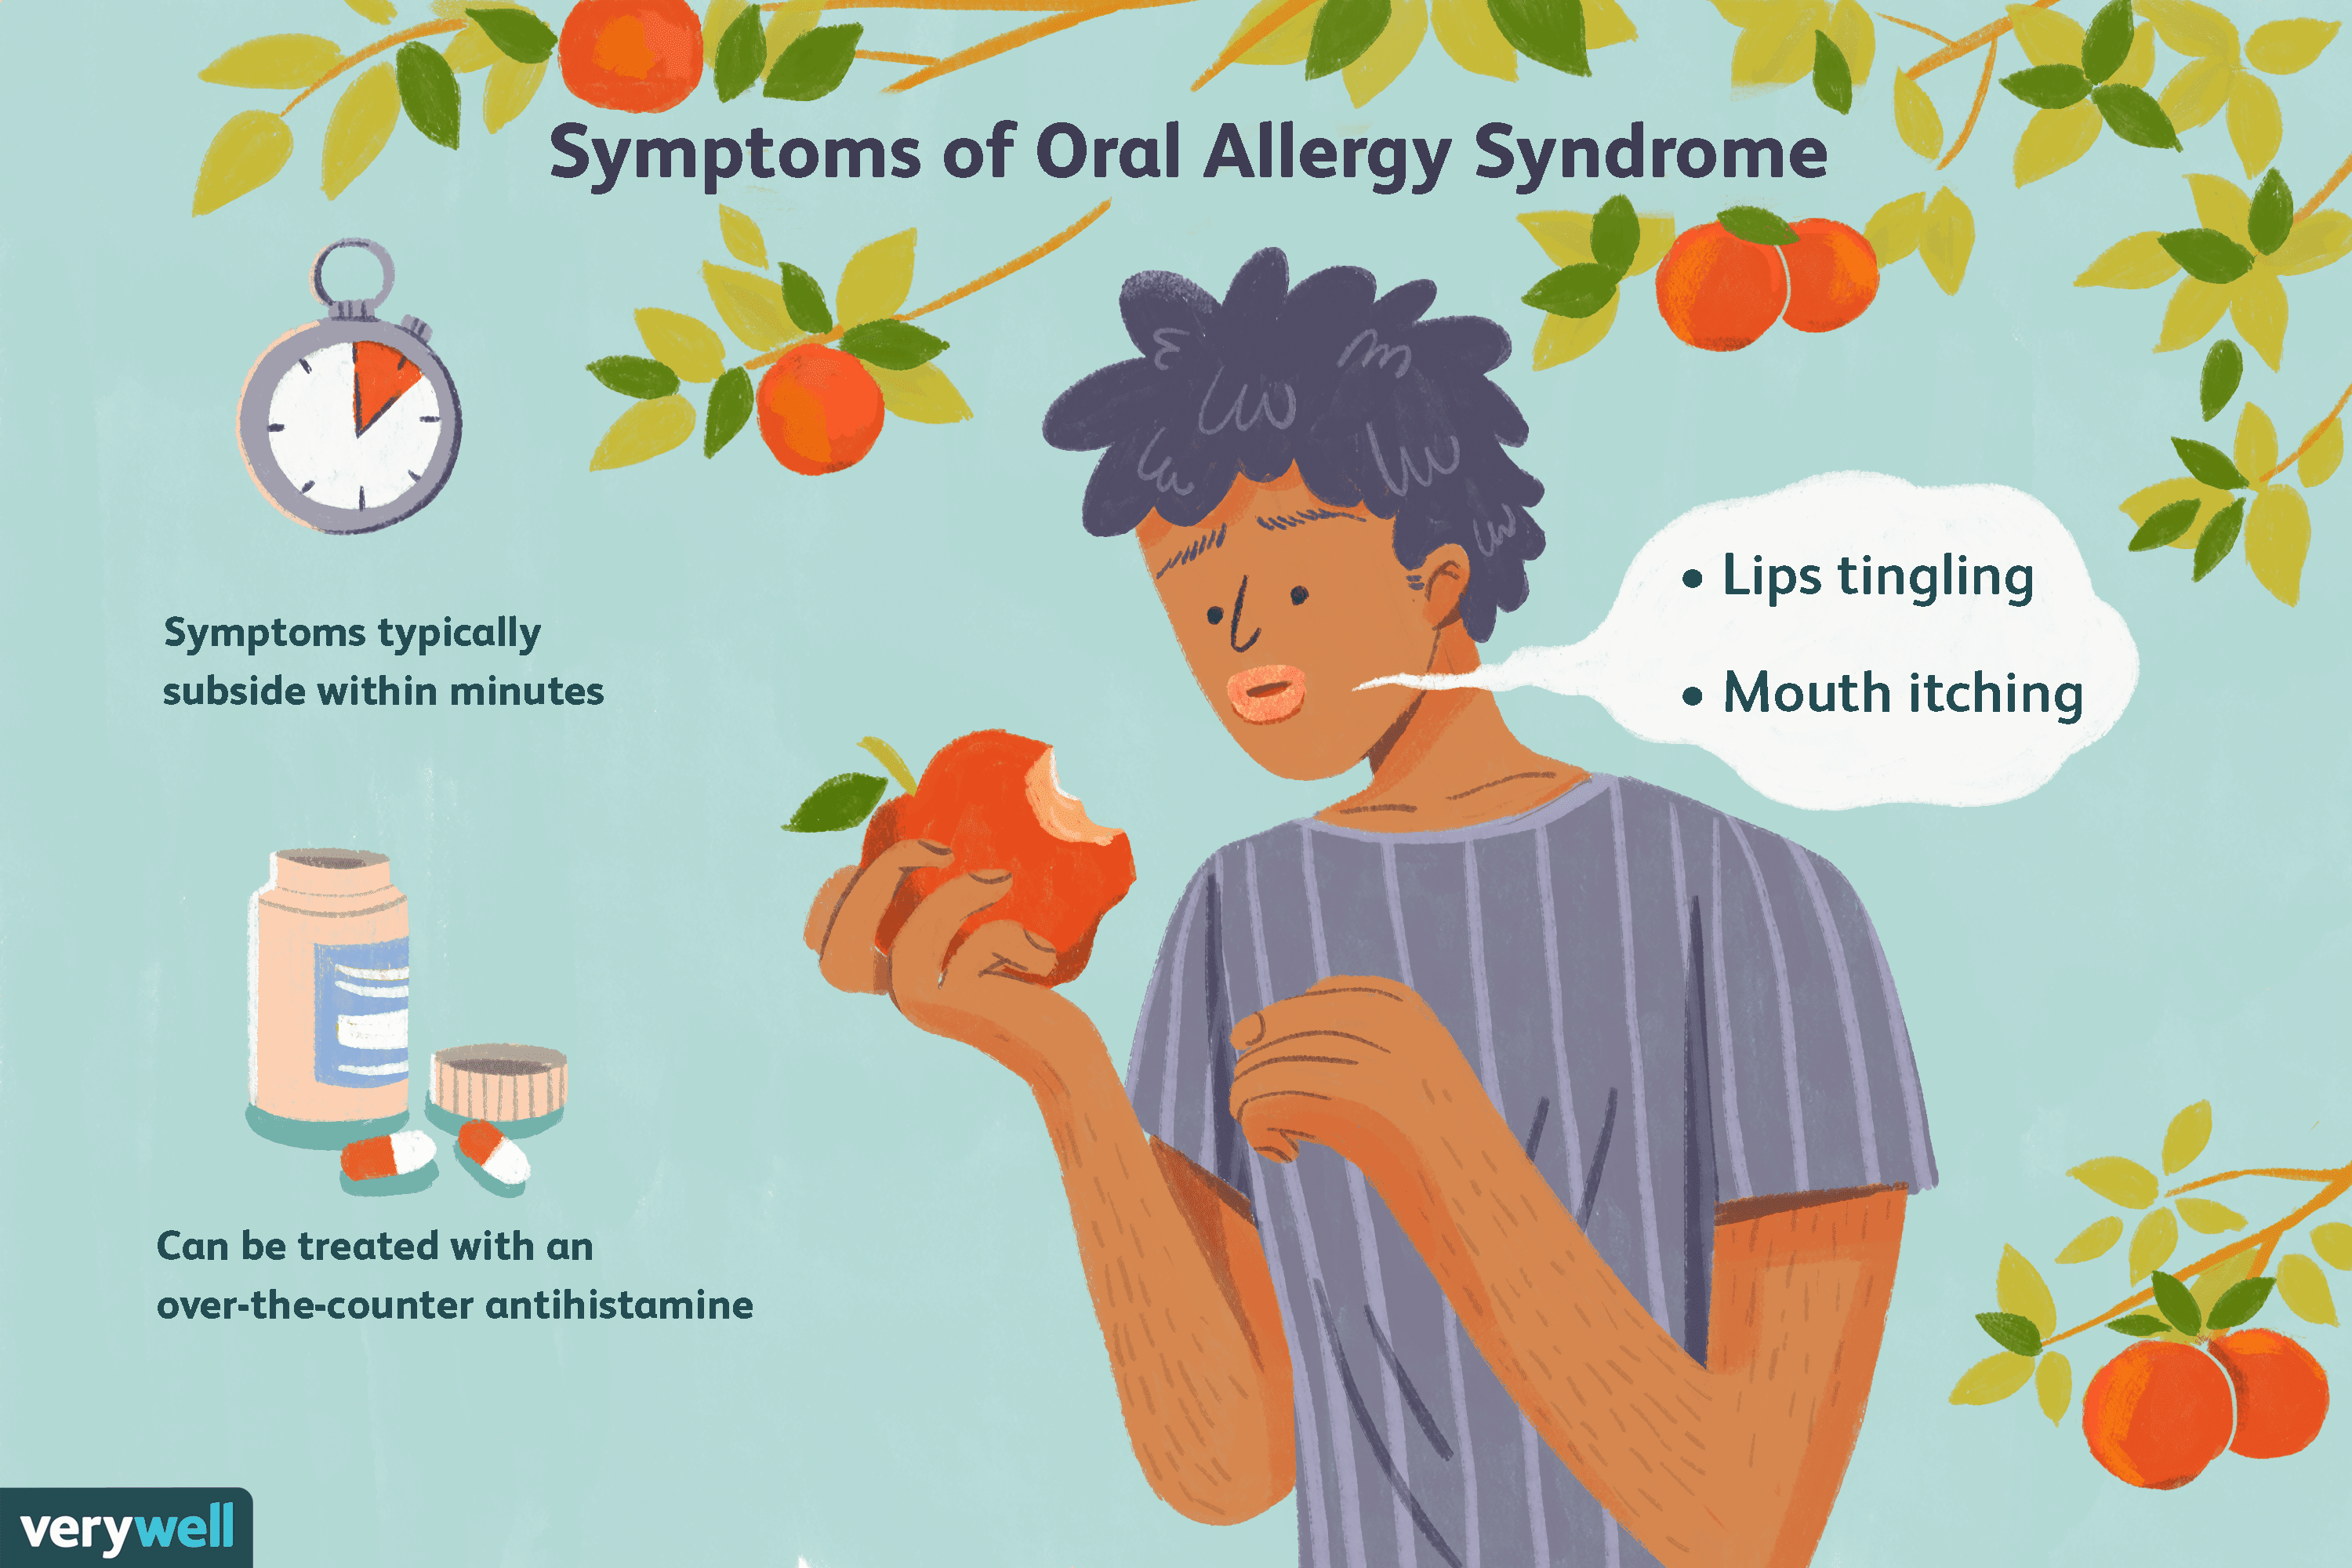 Oral Allergy Syndrome: Raw Apples Make Your Mouth Itch